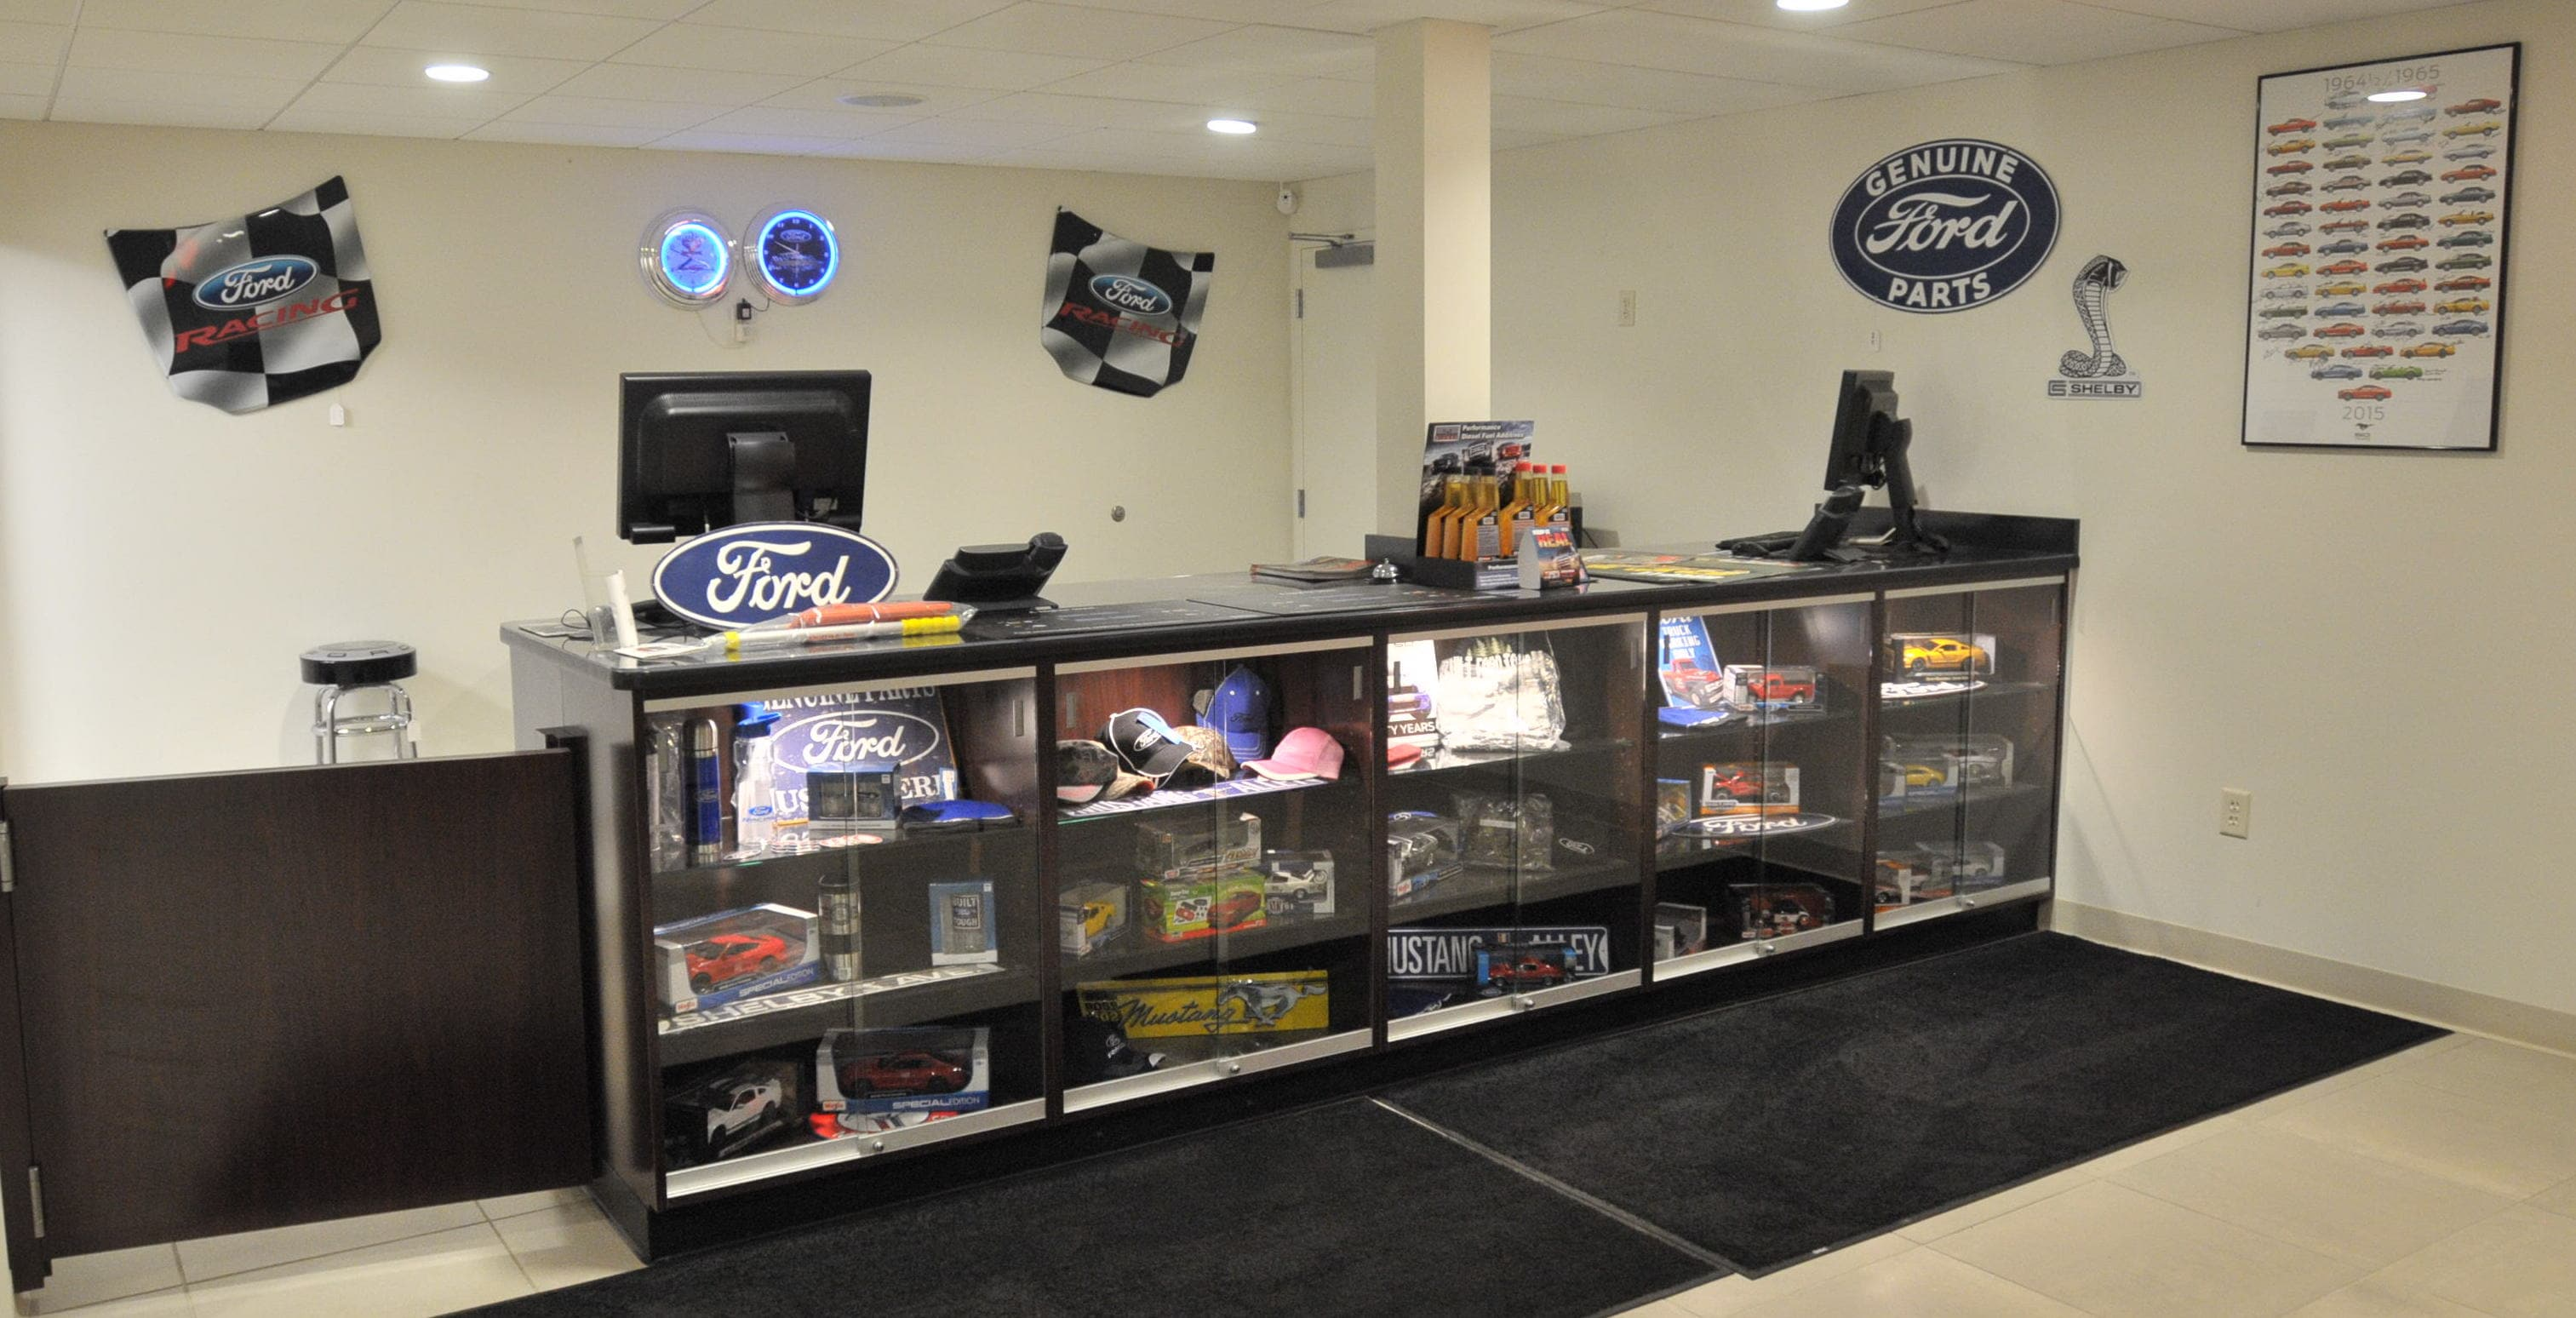 Ford Auto Parts Dealer In Hamburg West Herr Ford Parts Center